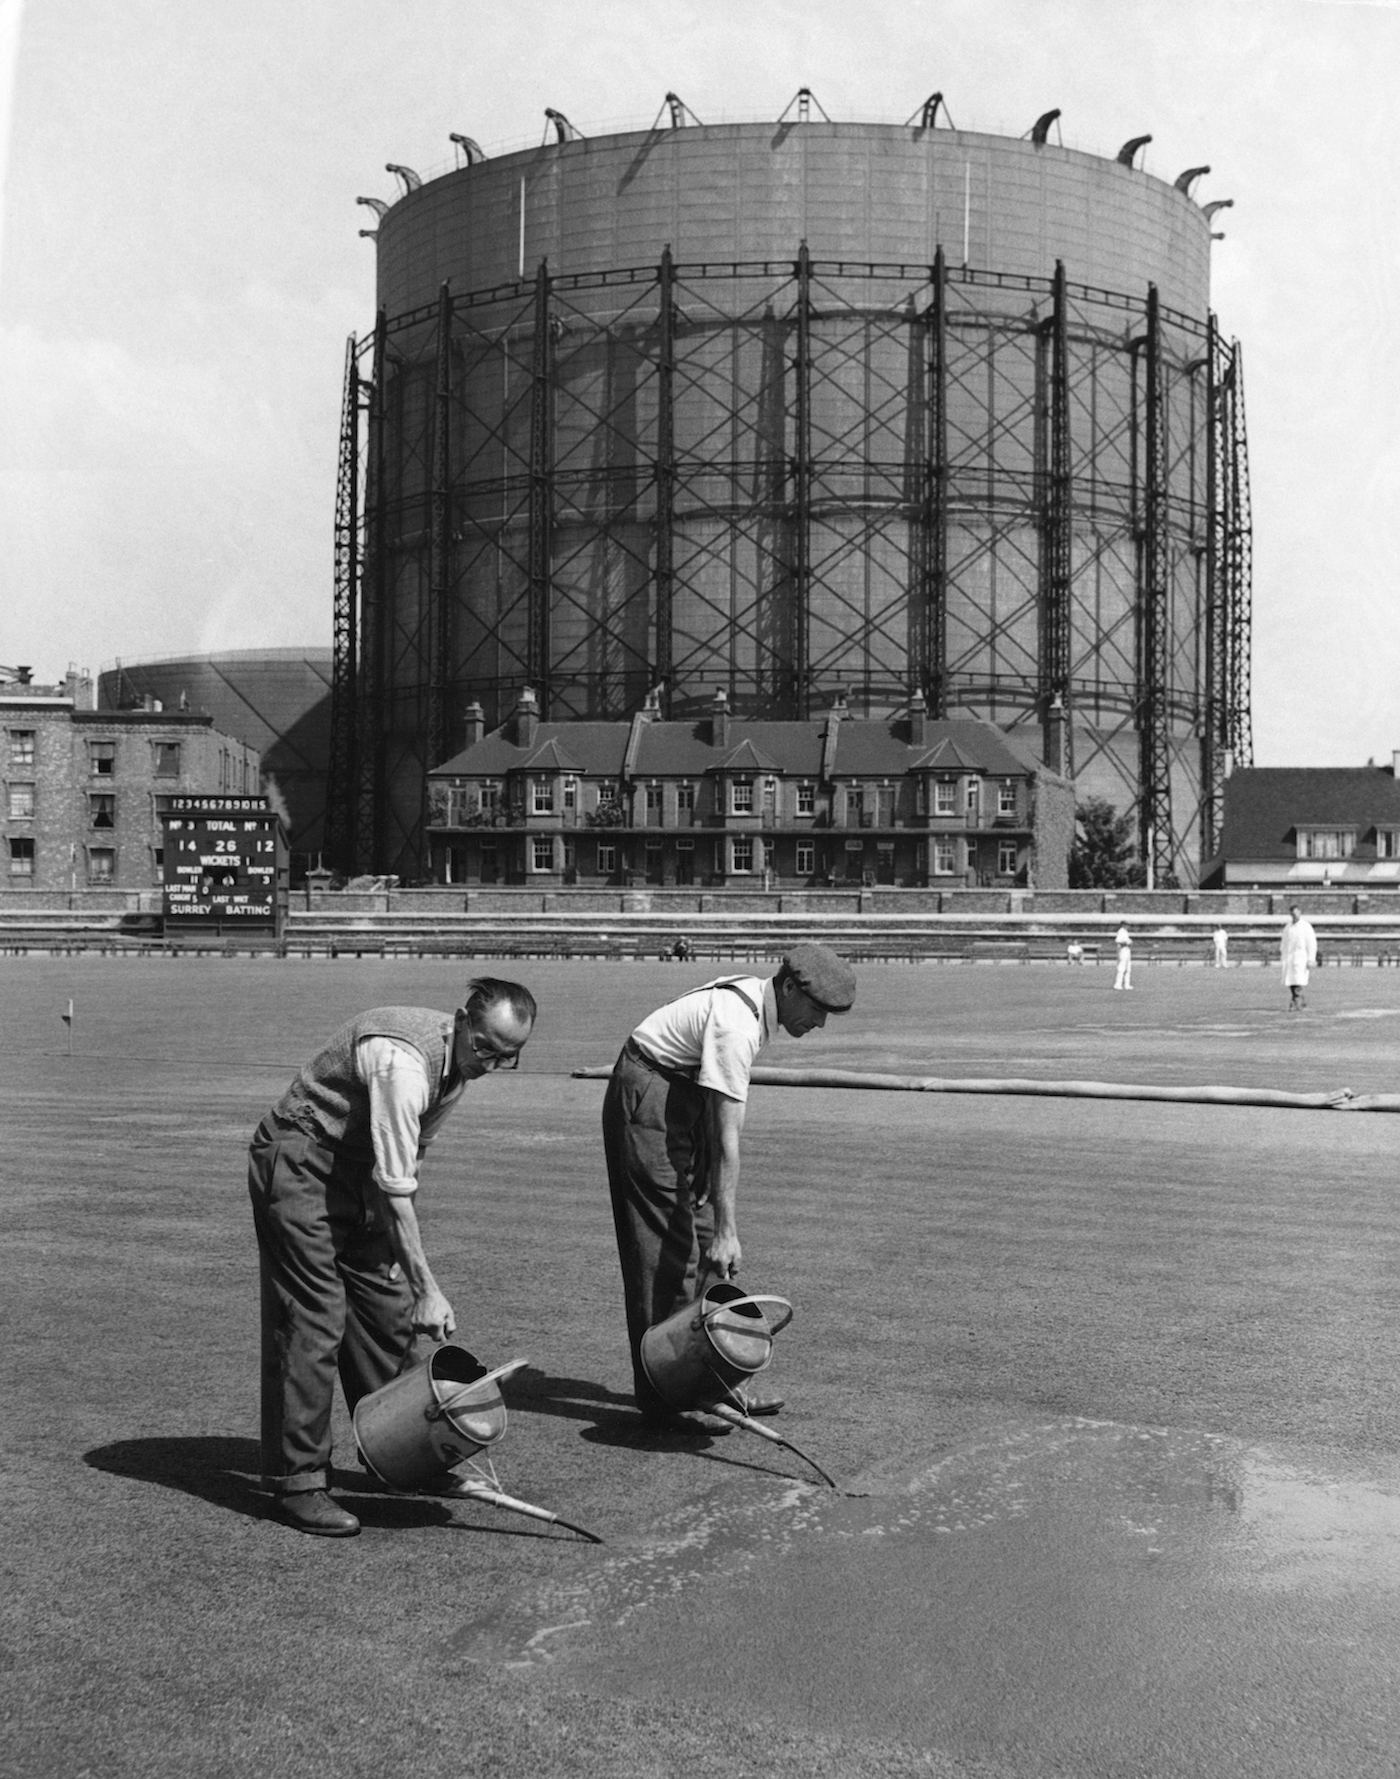 Workers water and fertilise the turf at The Oval before the final match of the 1953 Ashes